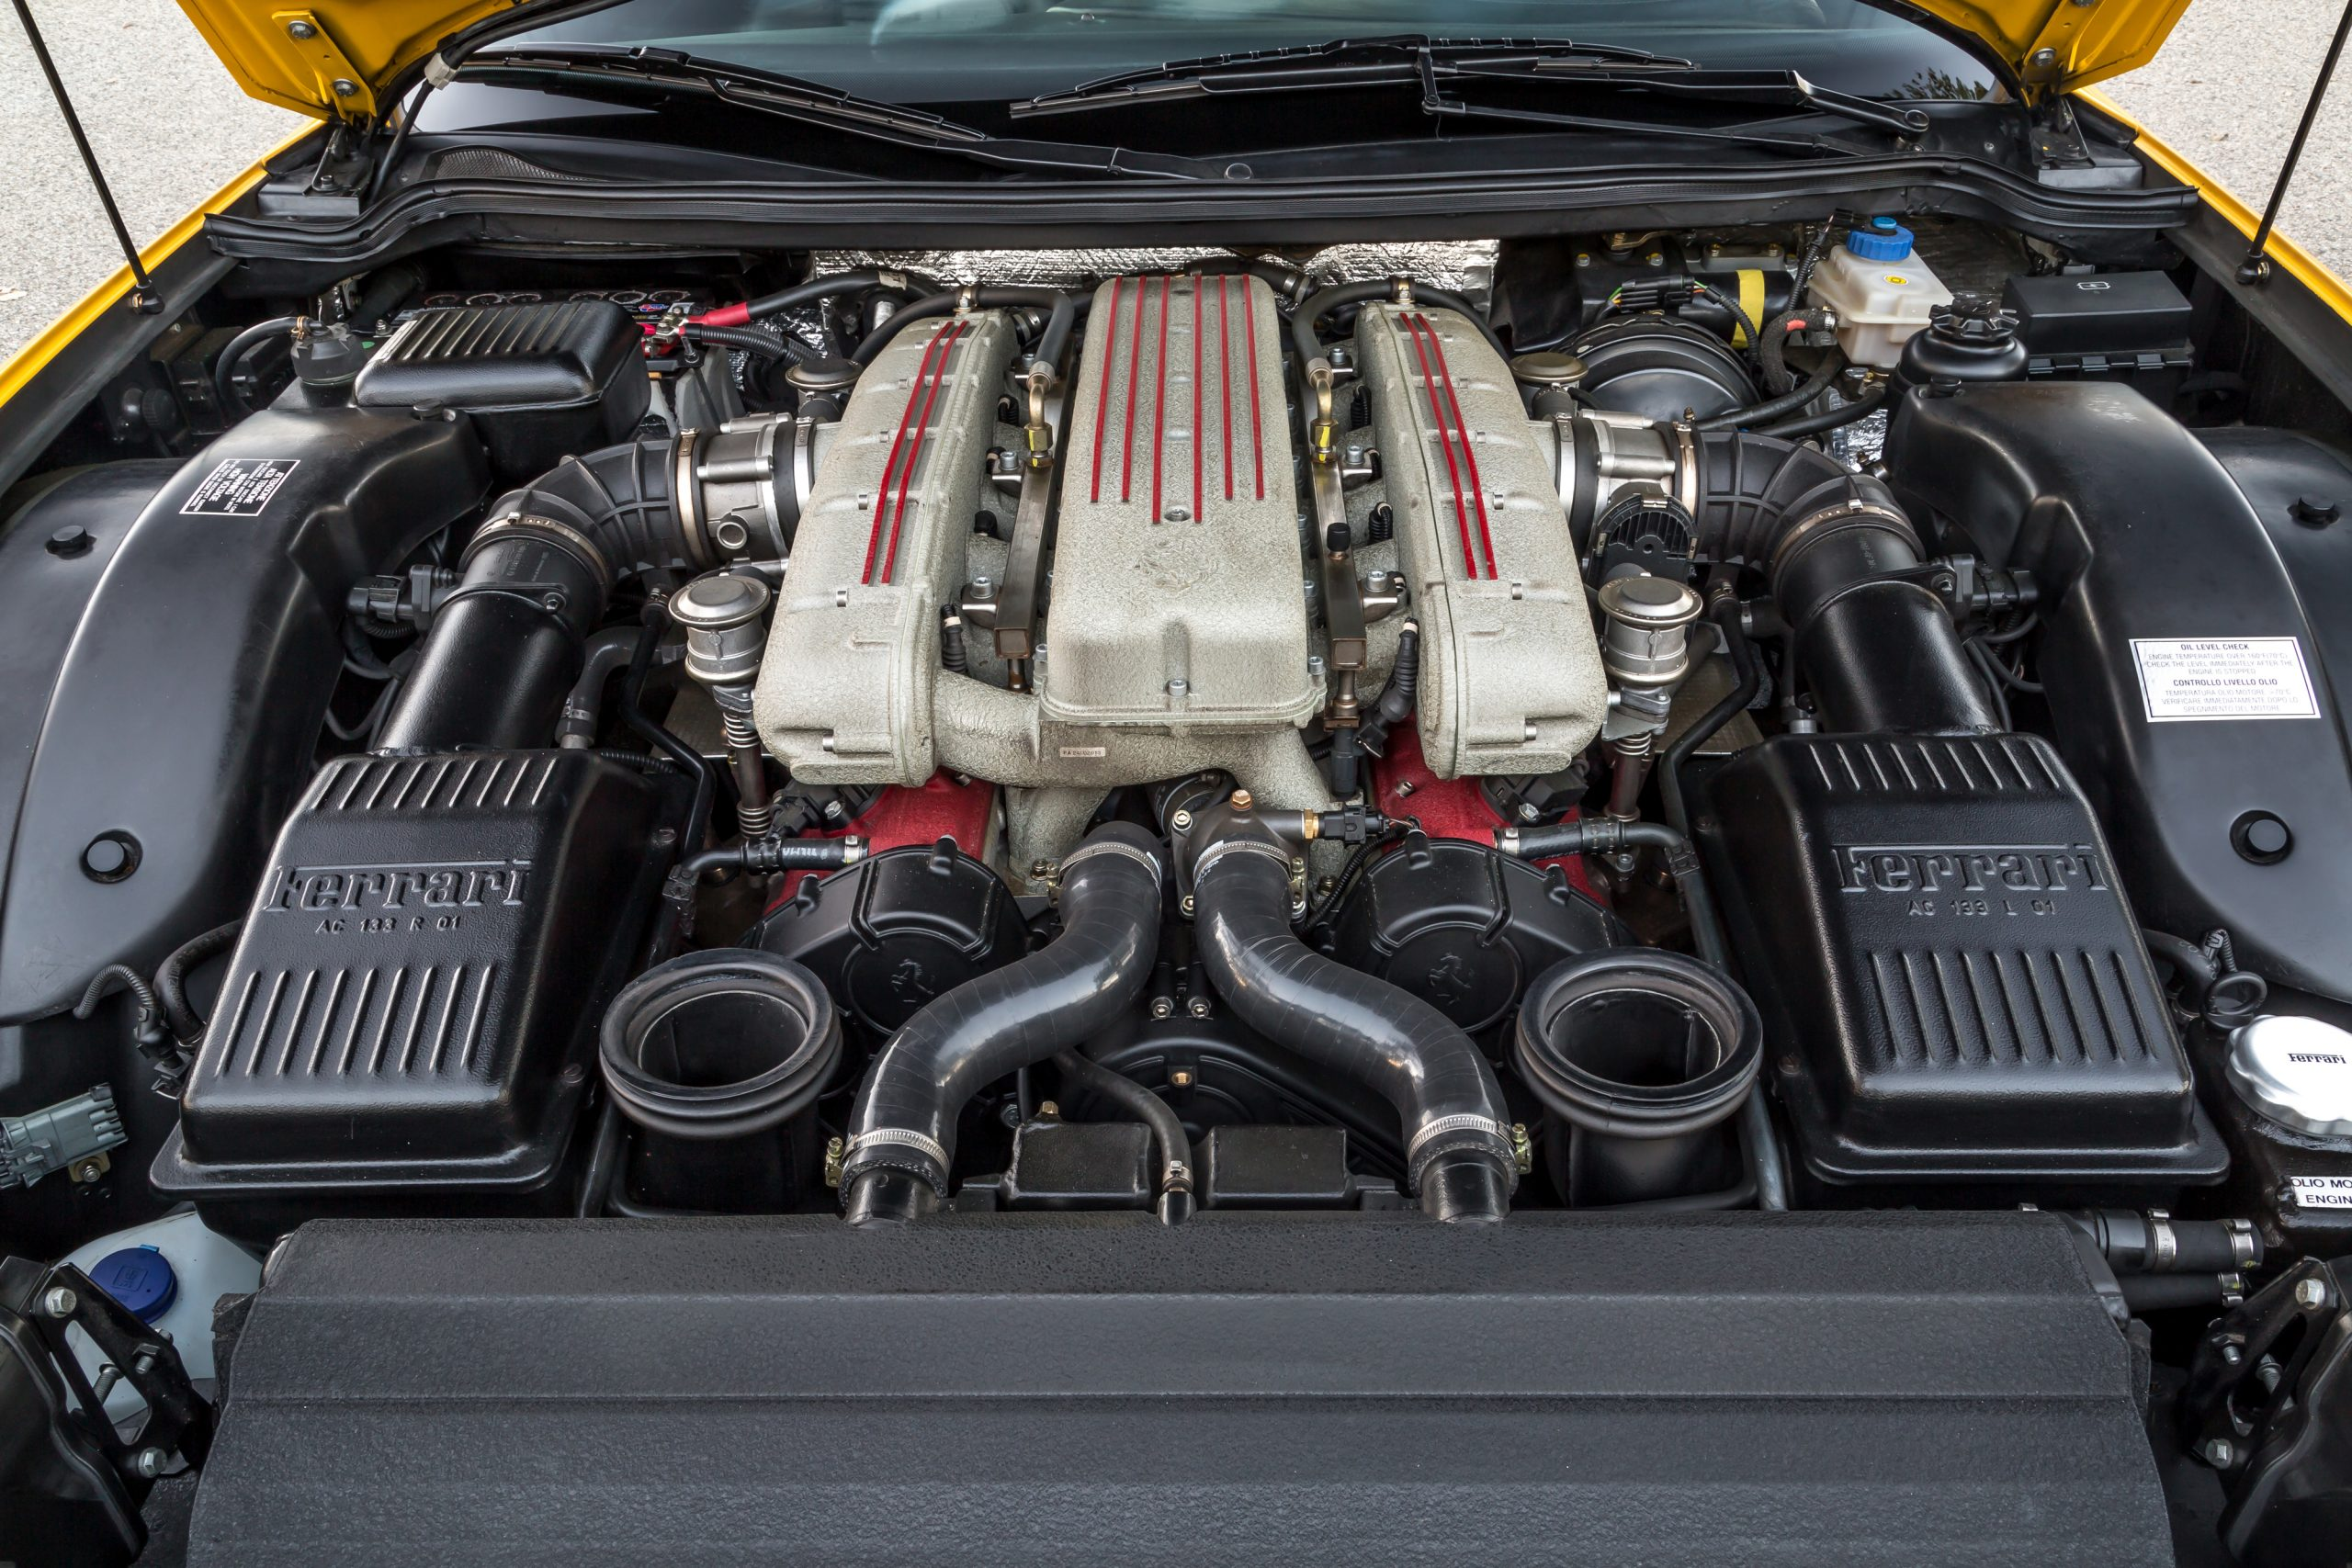 2002 Ferrari 575M Maranello Engine